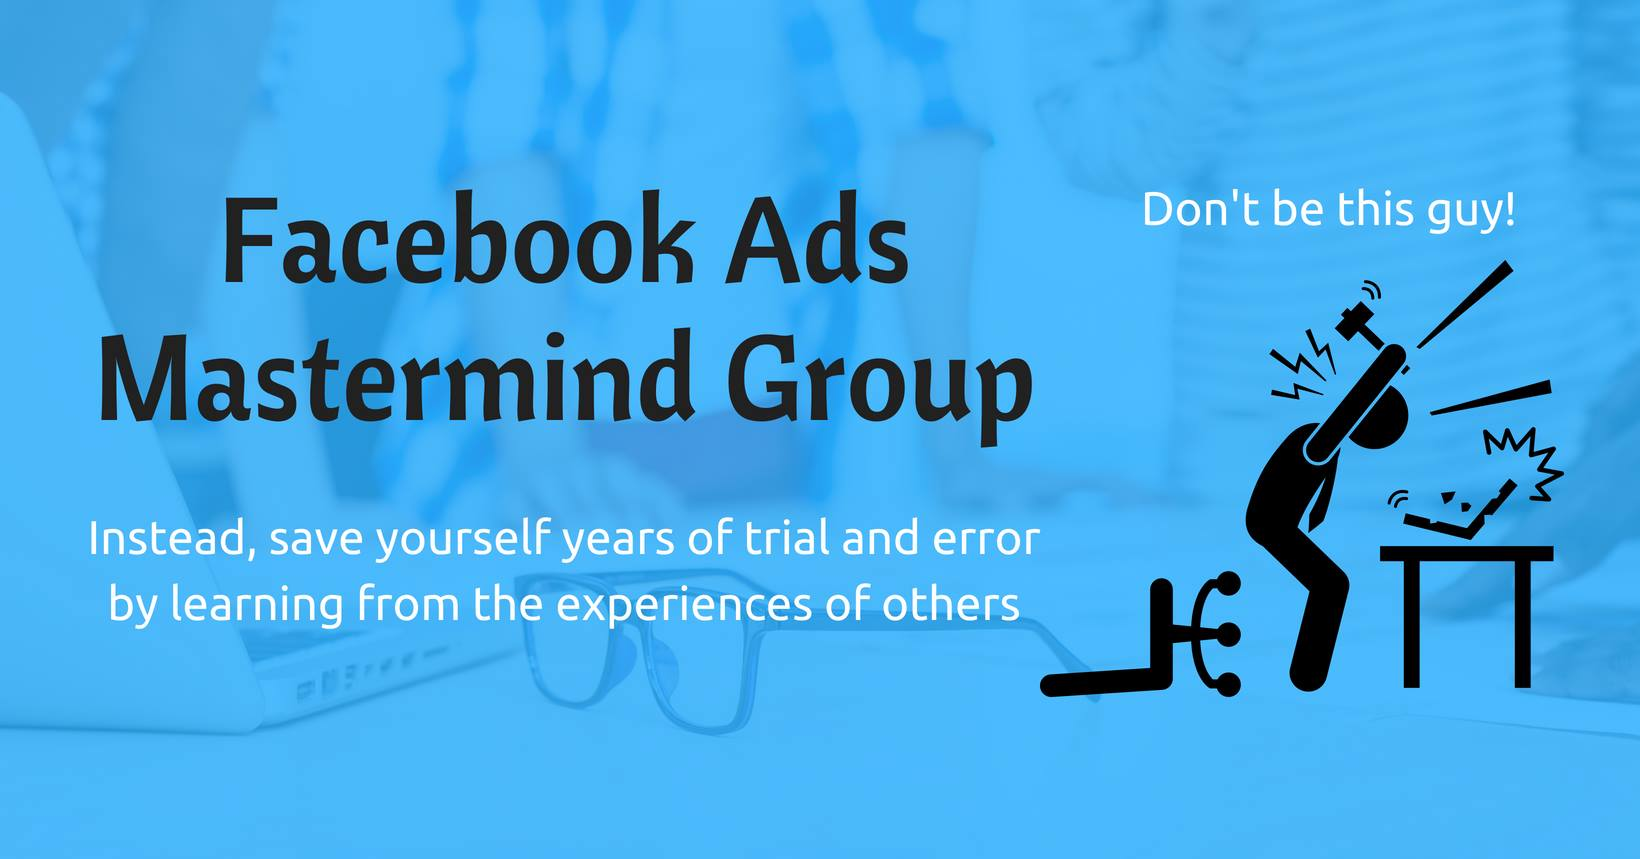 Facebook Ads Mastermind Facebook Group